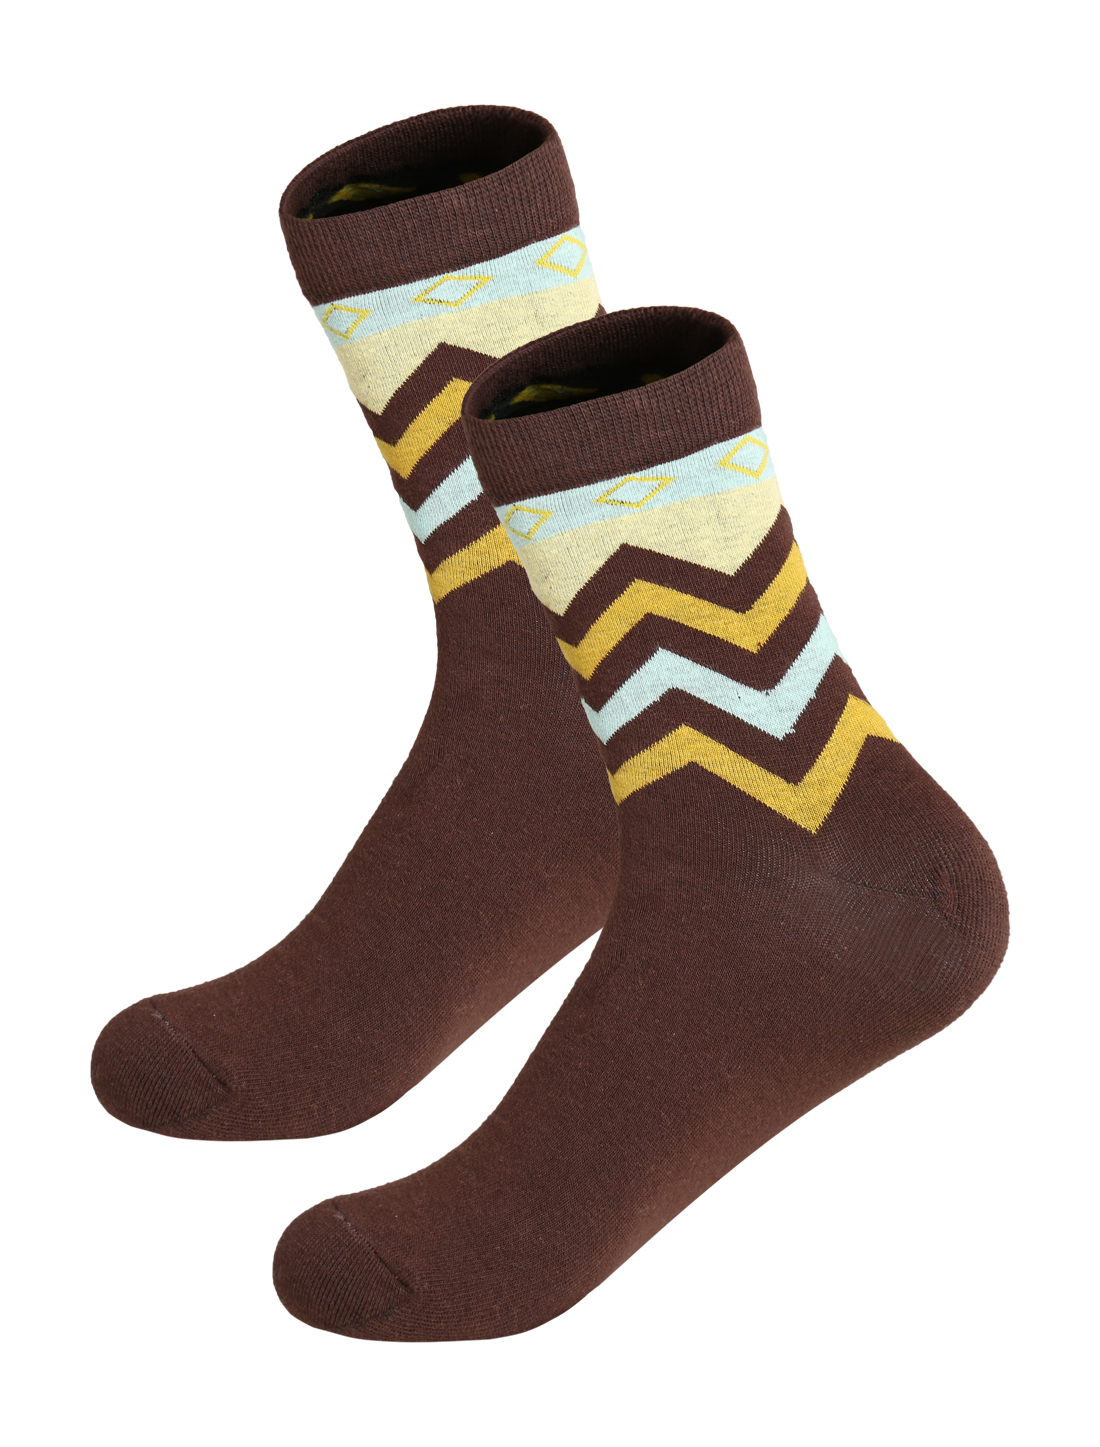 Men 2 pairs Zigzag Argyle Contrast Color Crew Sock Brown 10-12